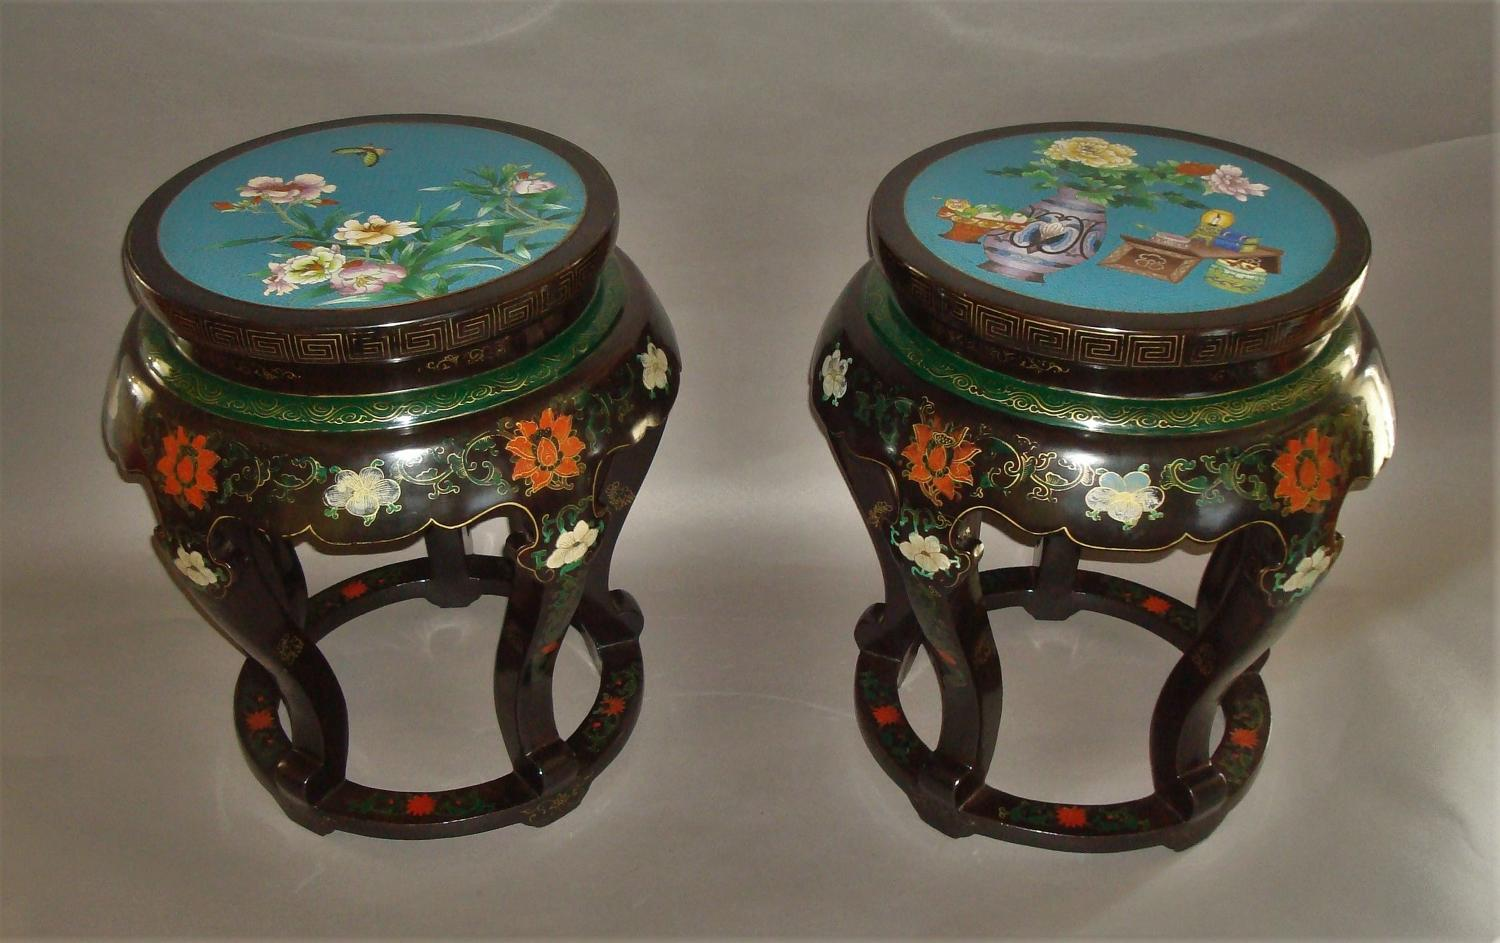 A pair of Chinese lacquered low tables